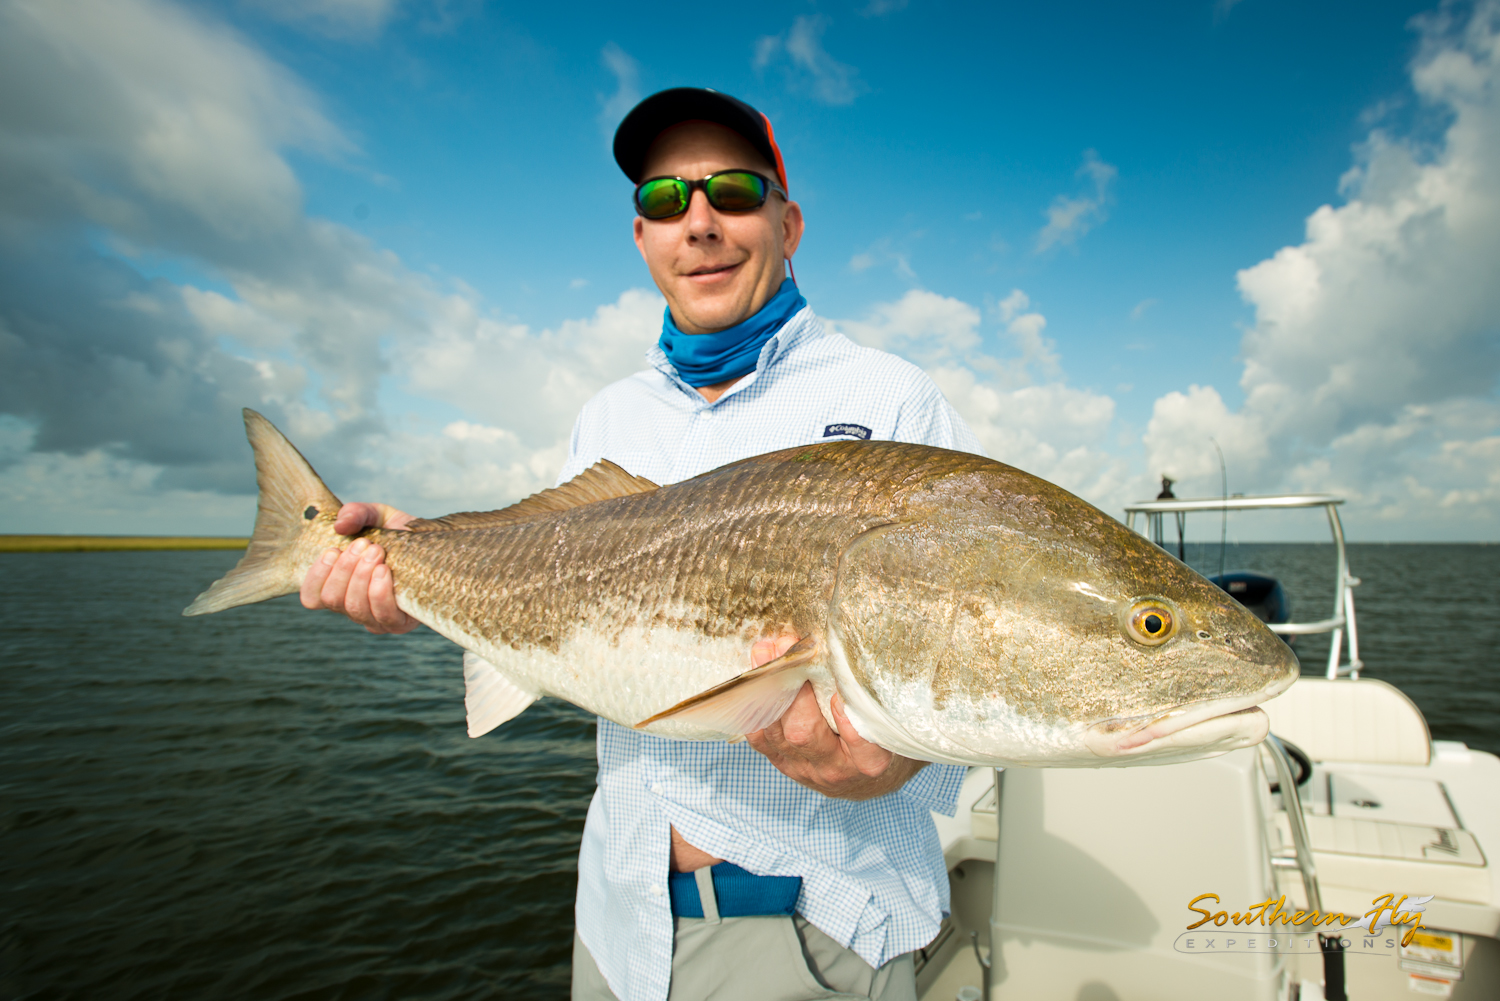 charter fly fishing for redfish with Southern Fly Expeditions